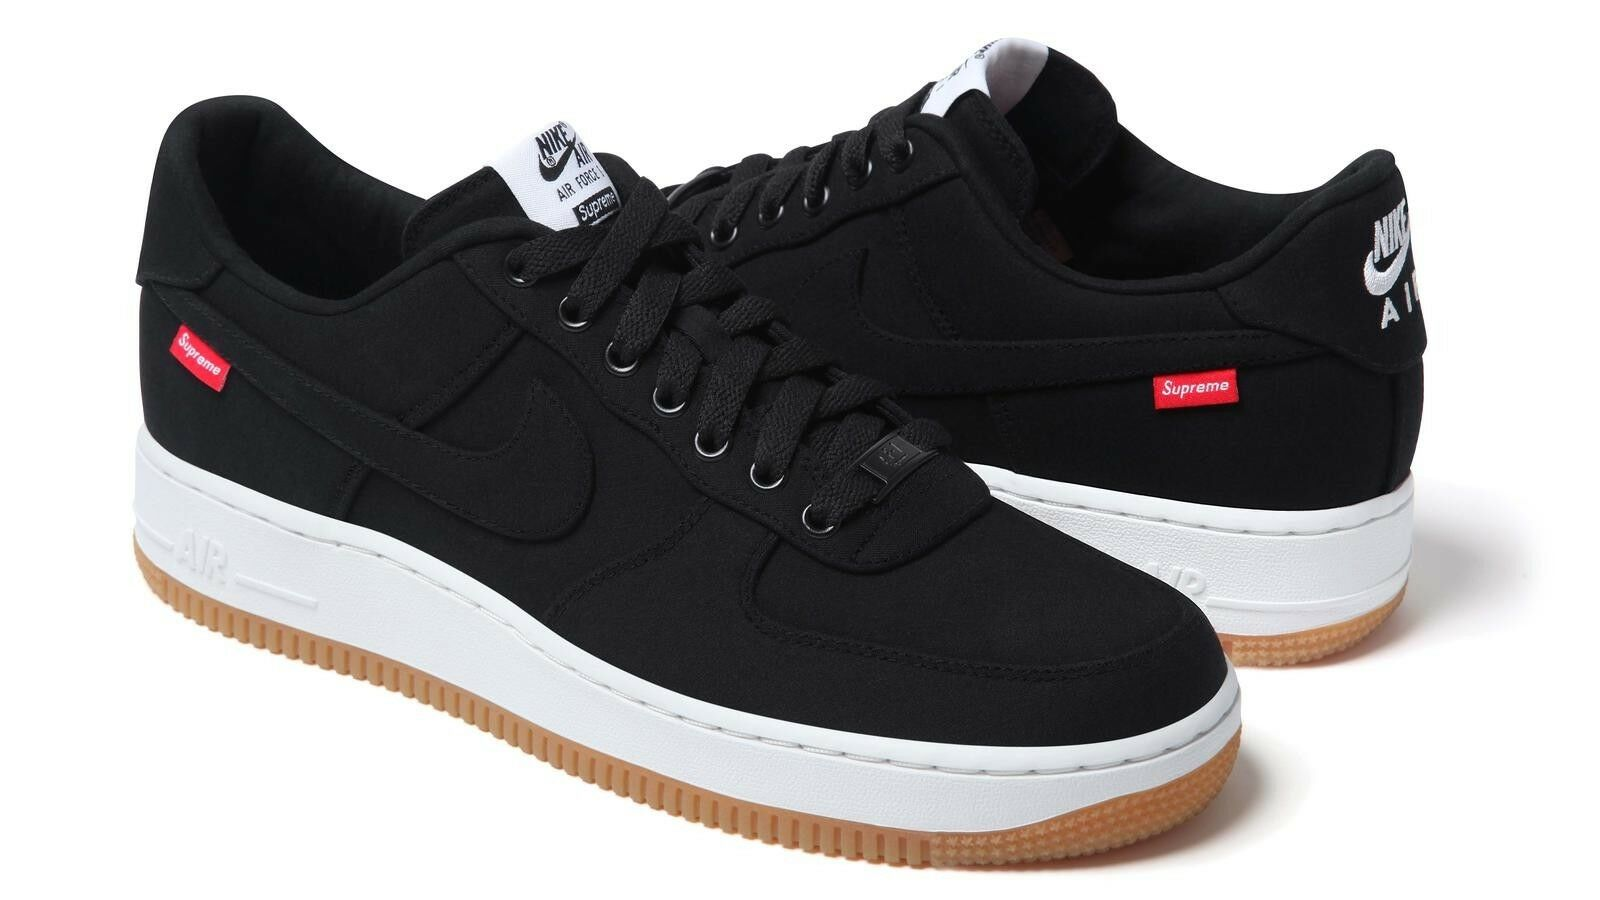 Supreme Nike Air Force 1 Black Size 10 FW2012